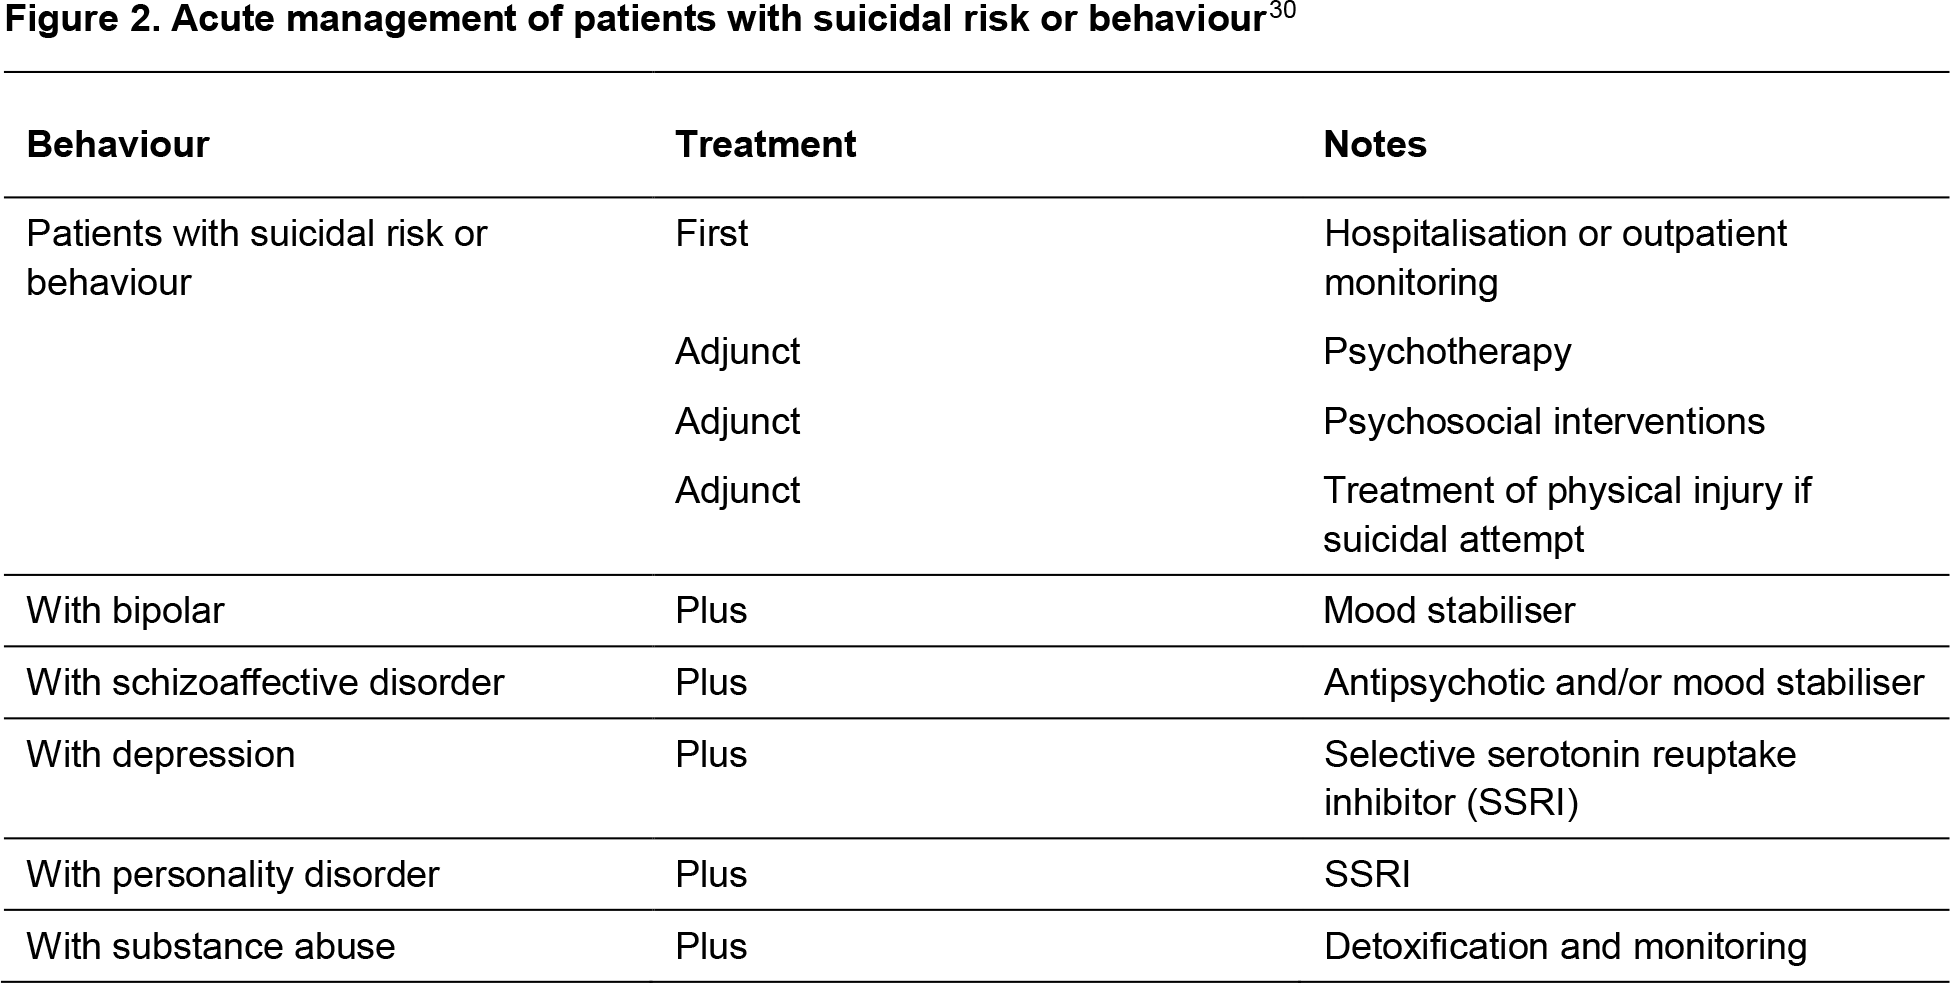 Figure 2. Management of patients with suicidal risk or behaviour